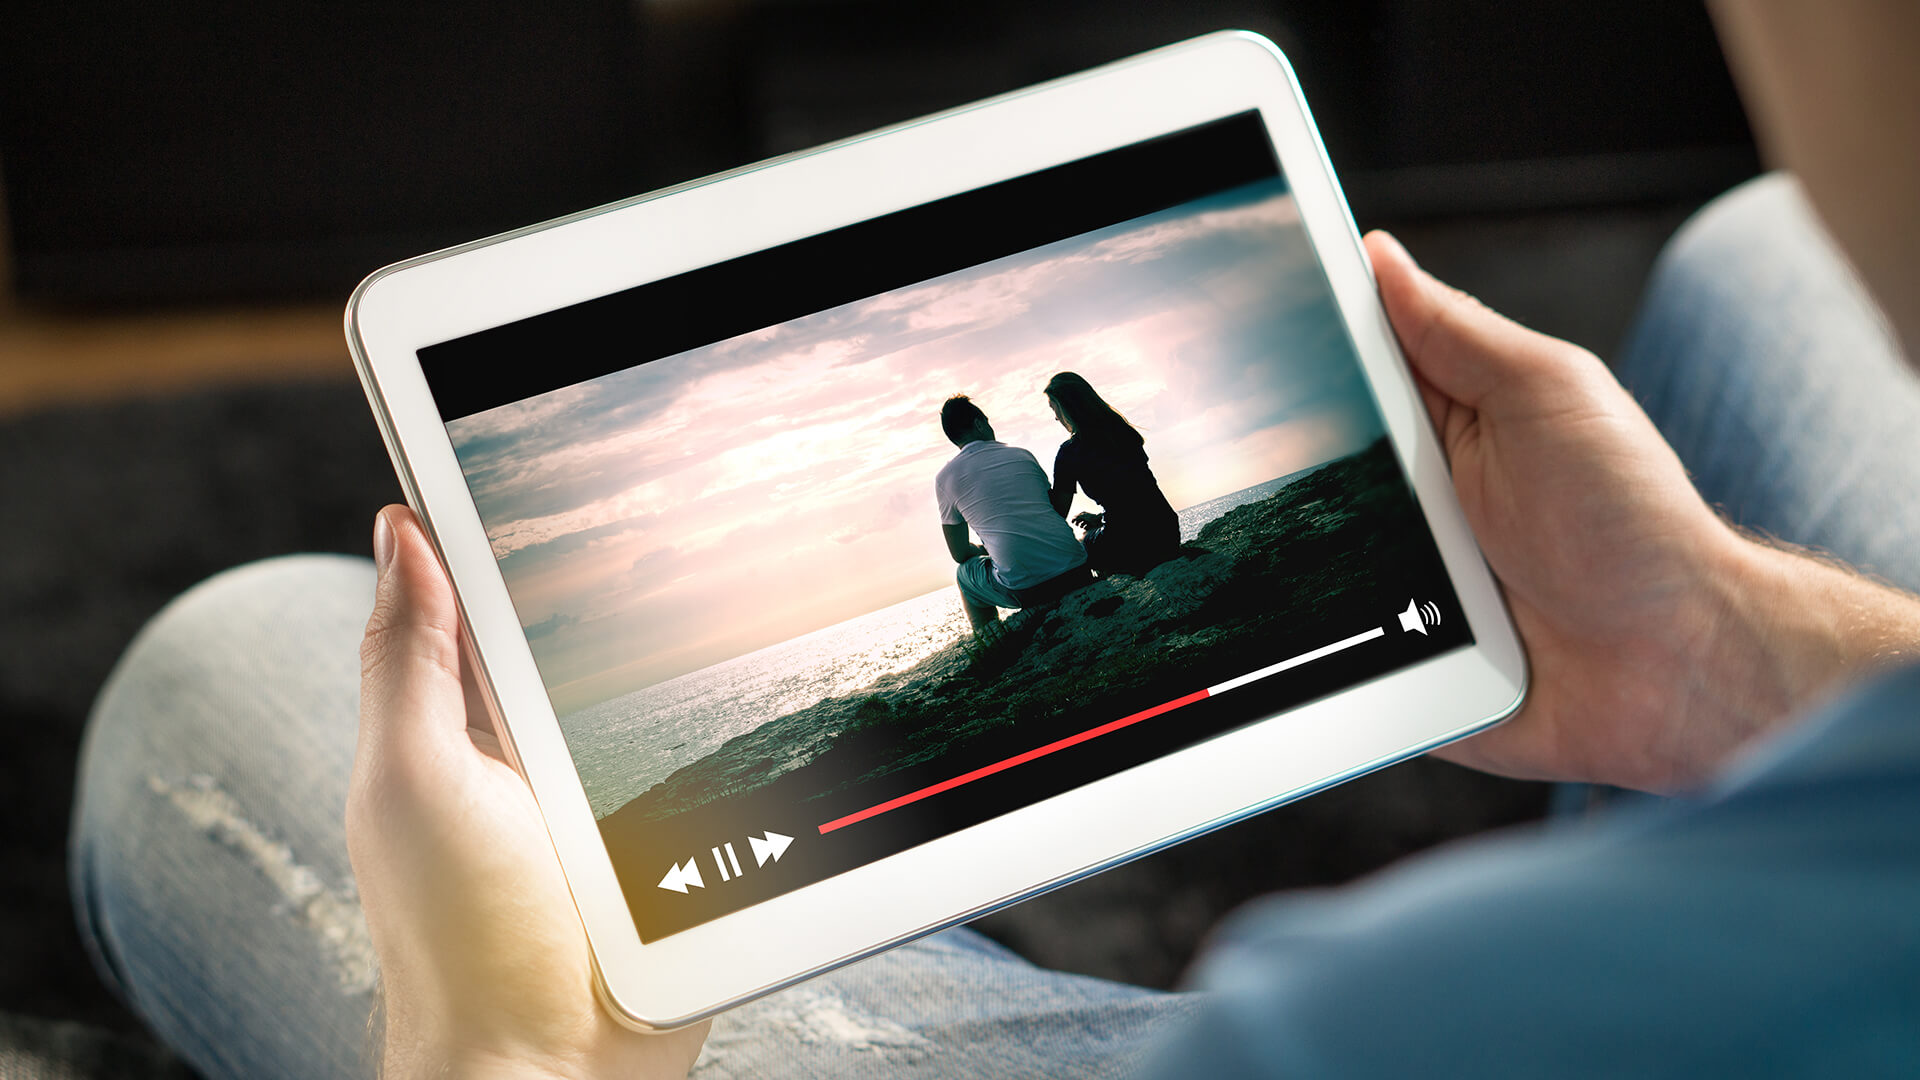 In OTT video, features are as important as content